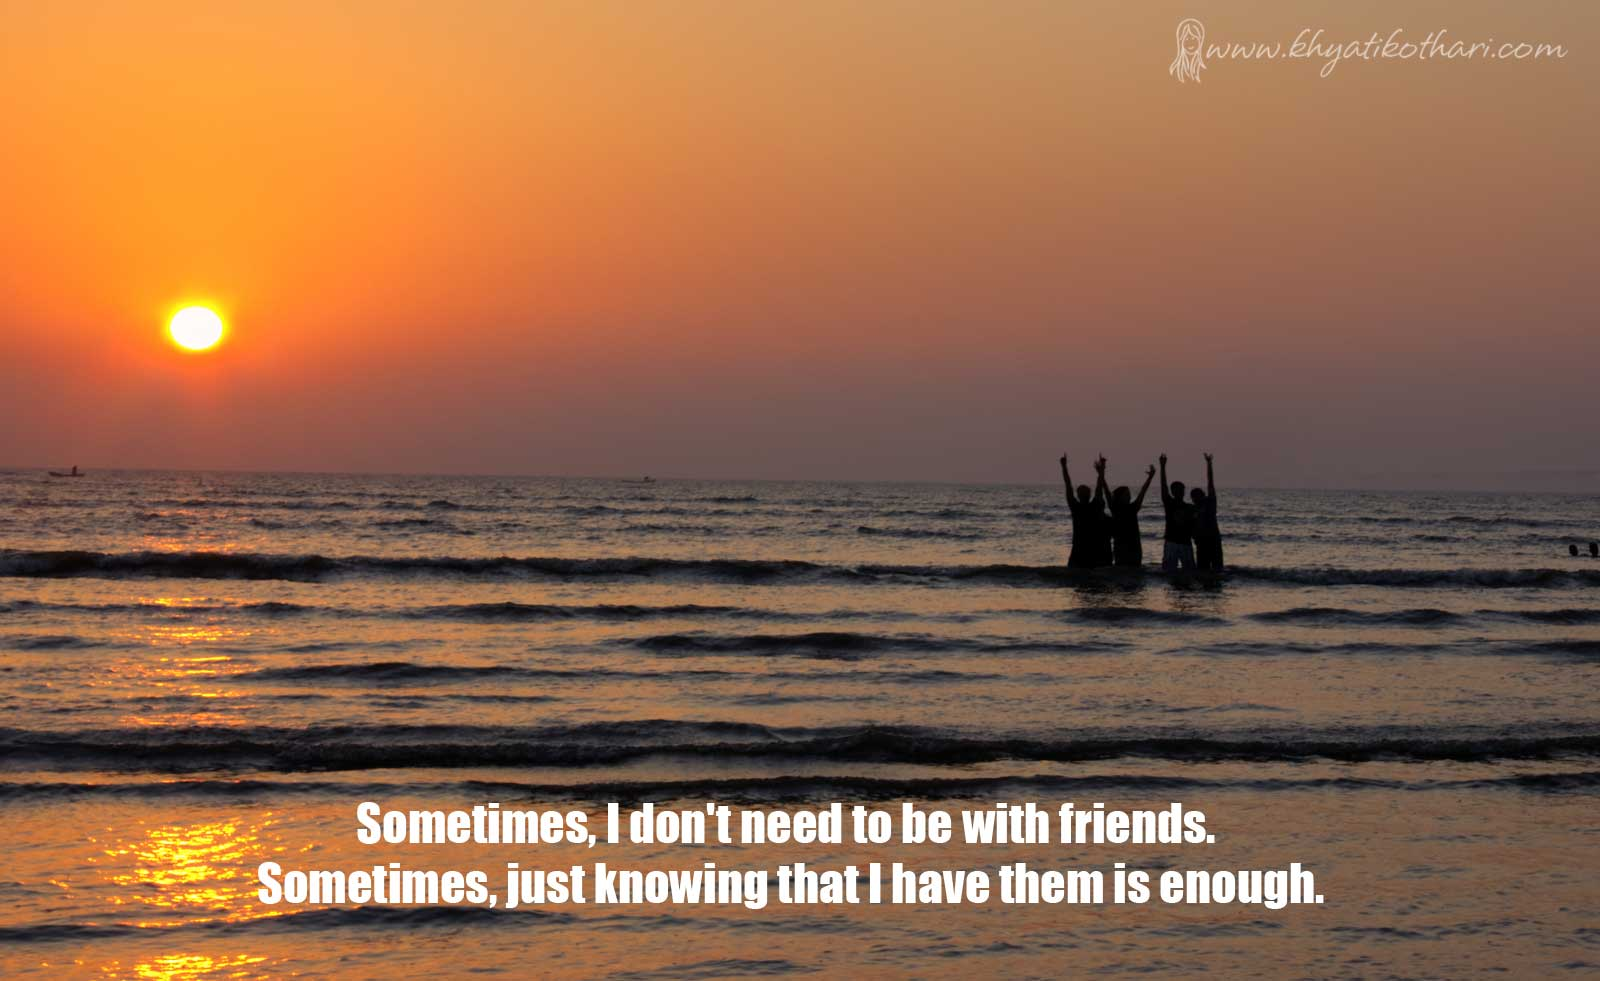 Sometimes, I don't need to be with friends.